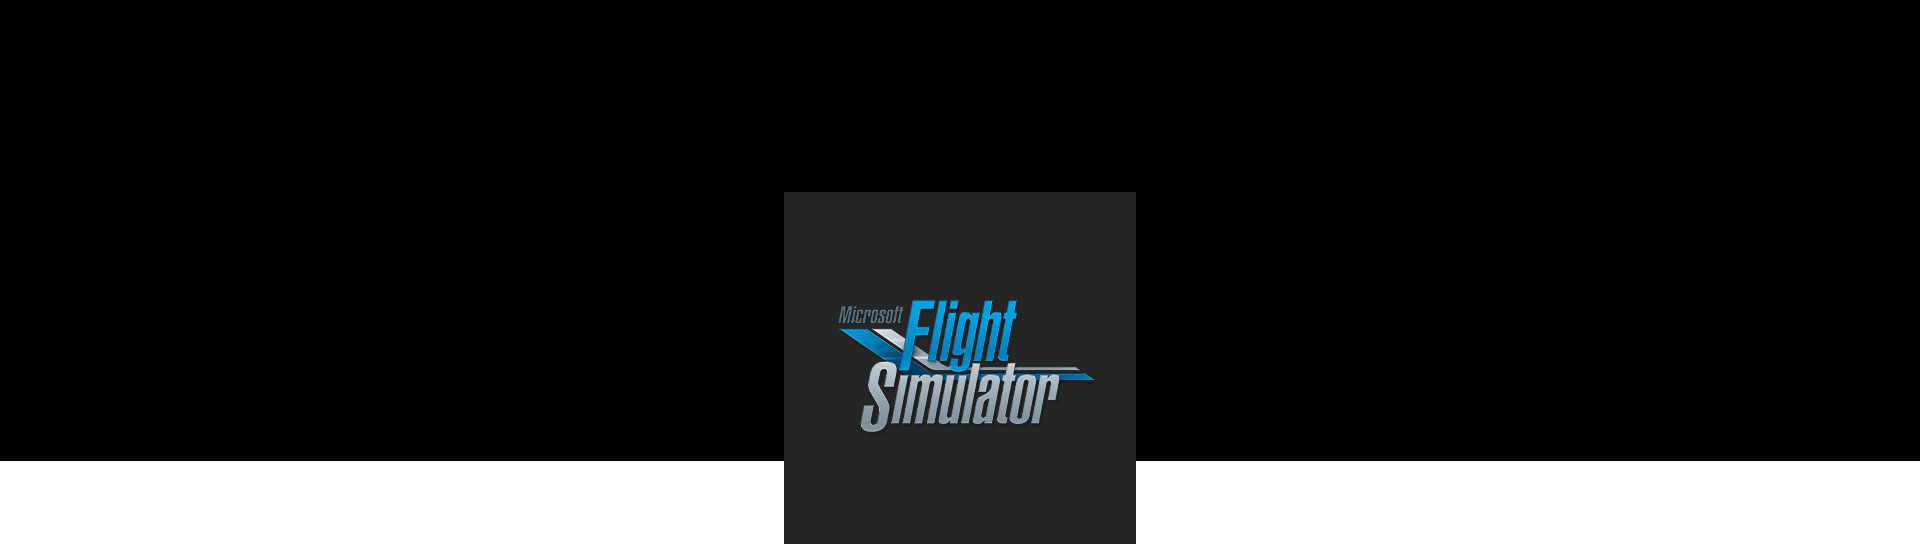 Microsoft Flight Simulator-Logo